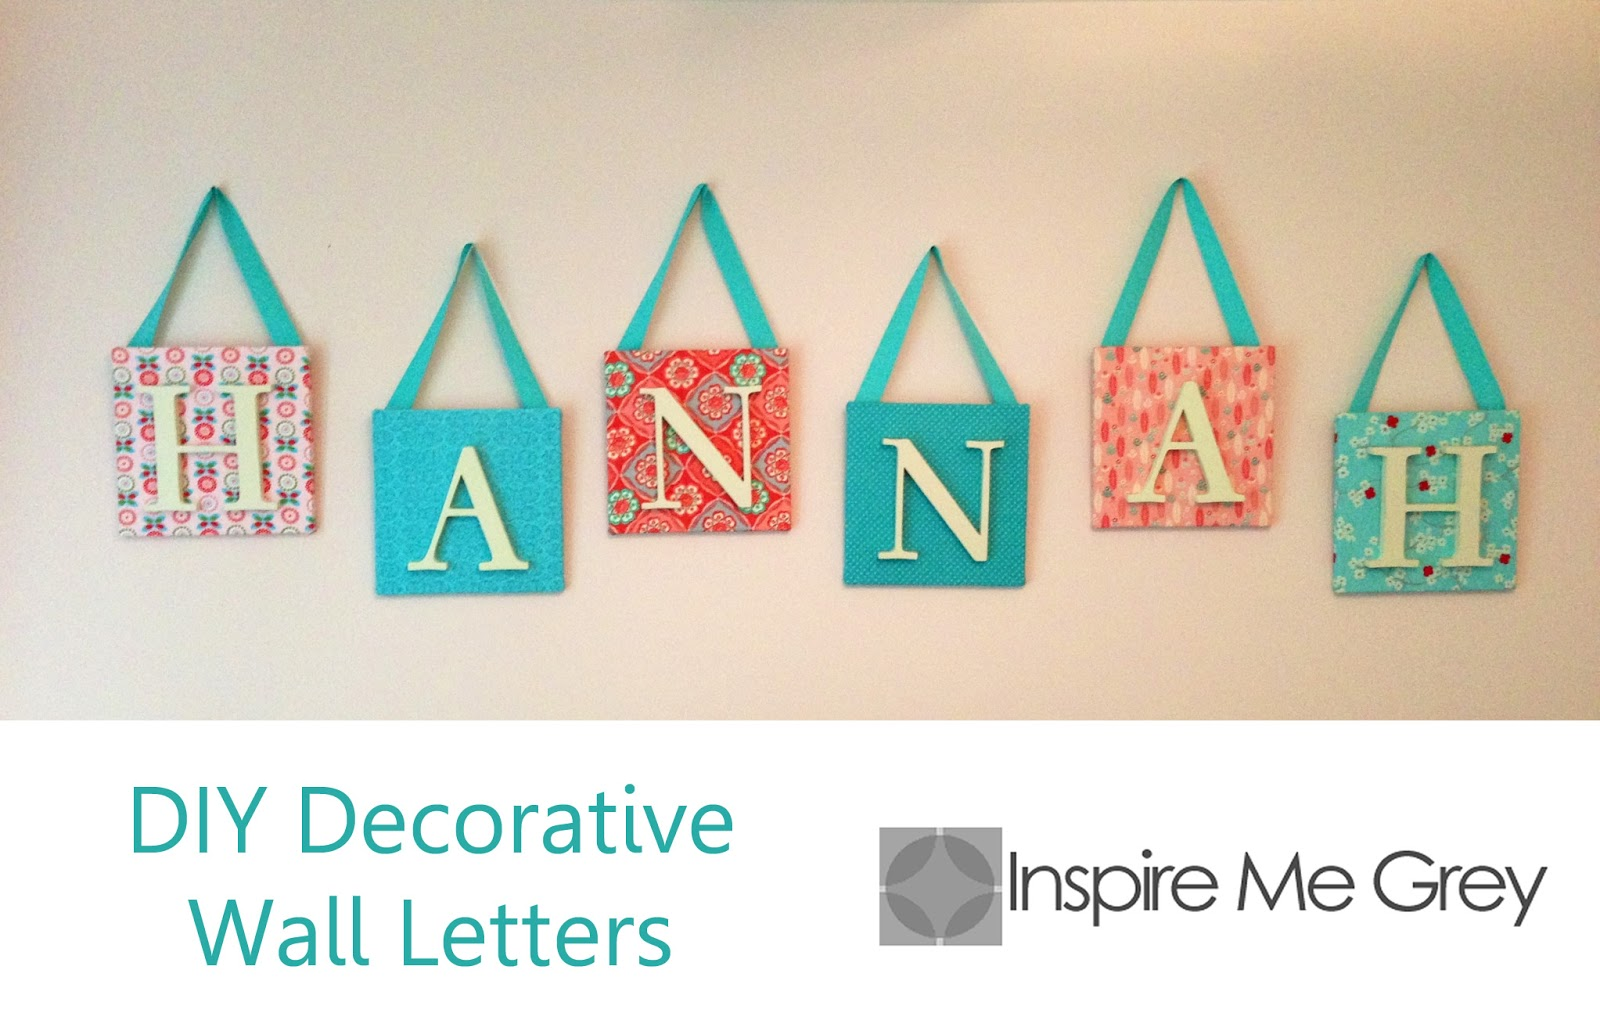 Inspire me grey diy decorative wall letters for Homemade wall letters